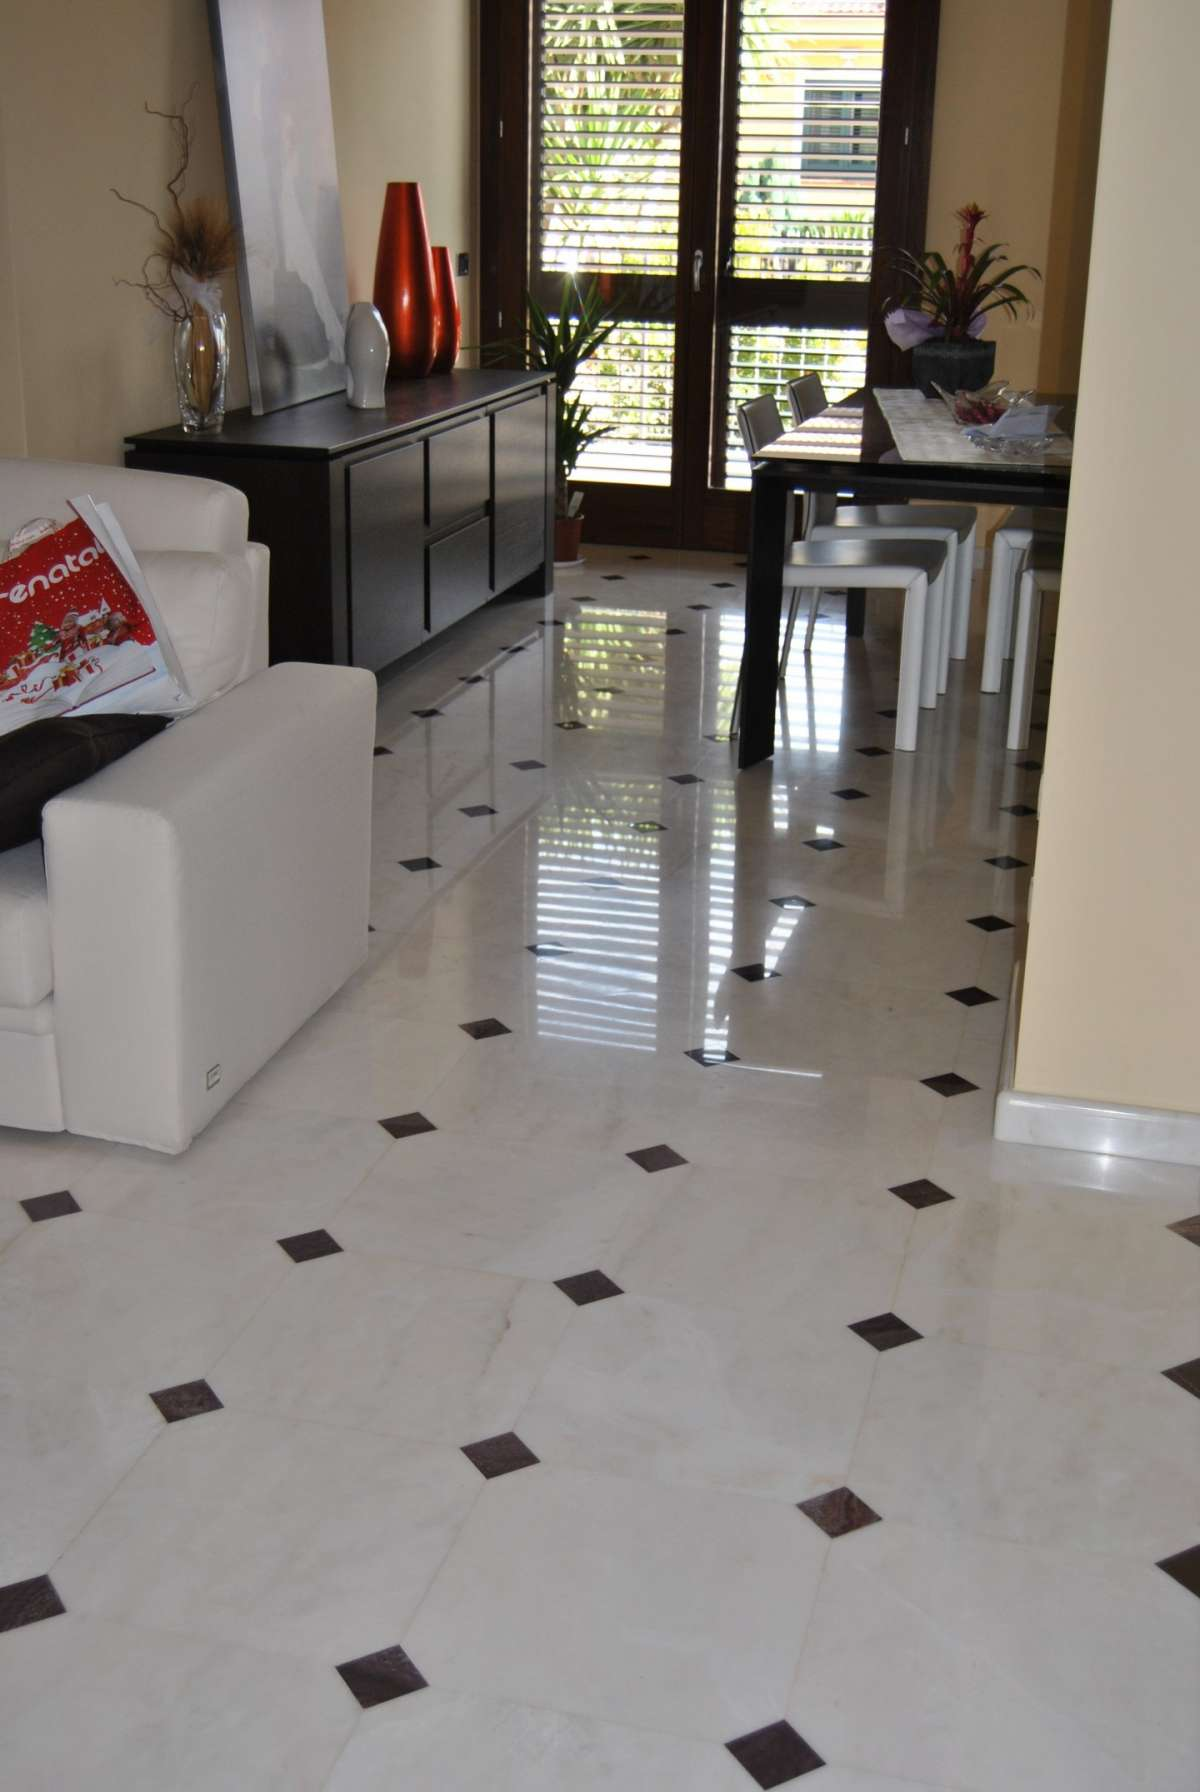 Affordable amazing decorazioni per pavimenti interni - Pavimento interno moderno ...